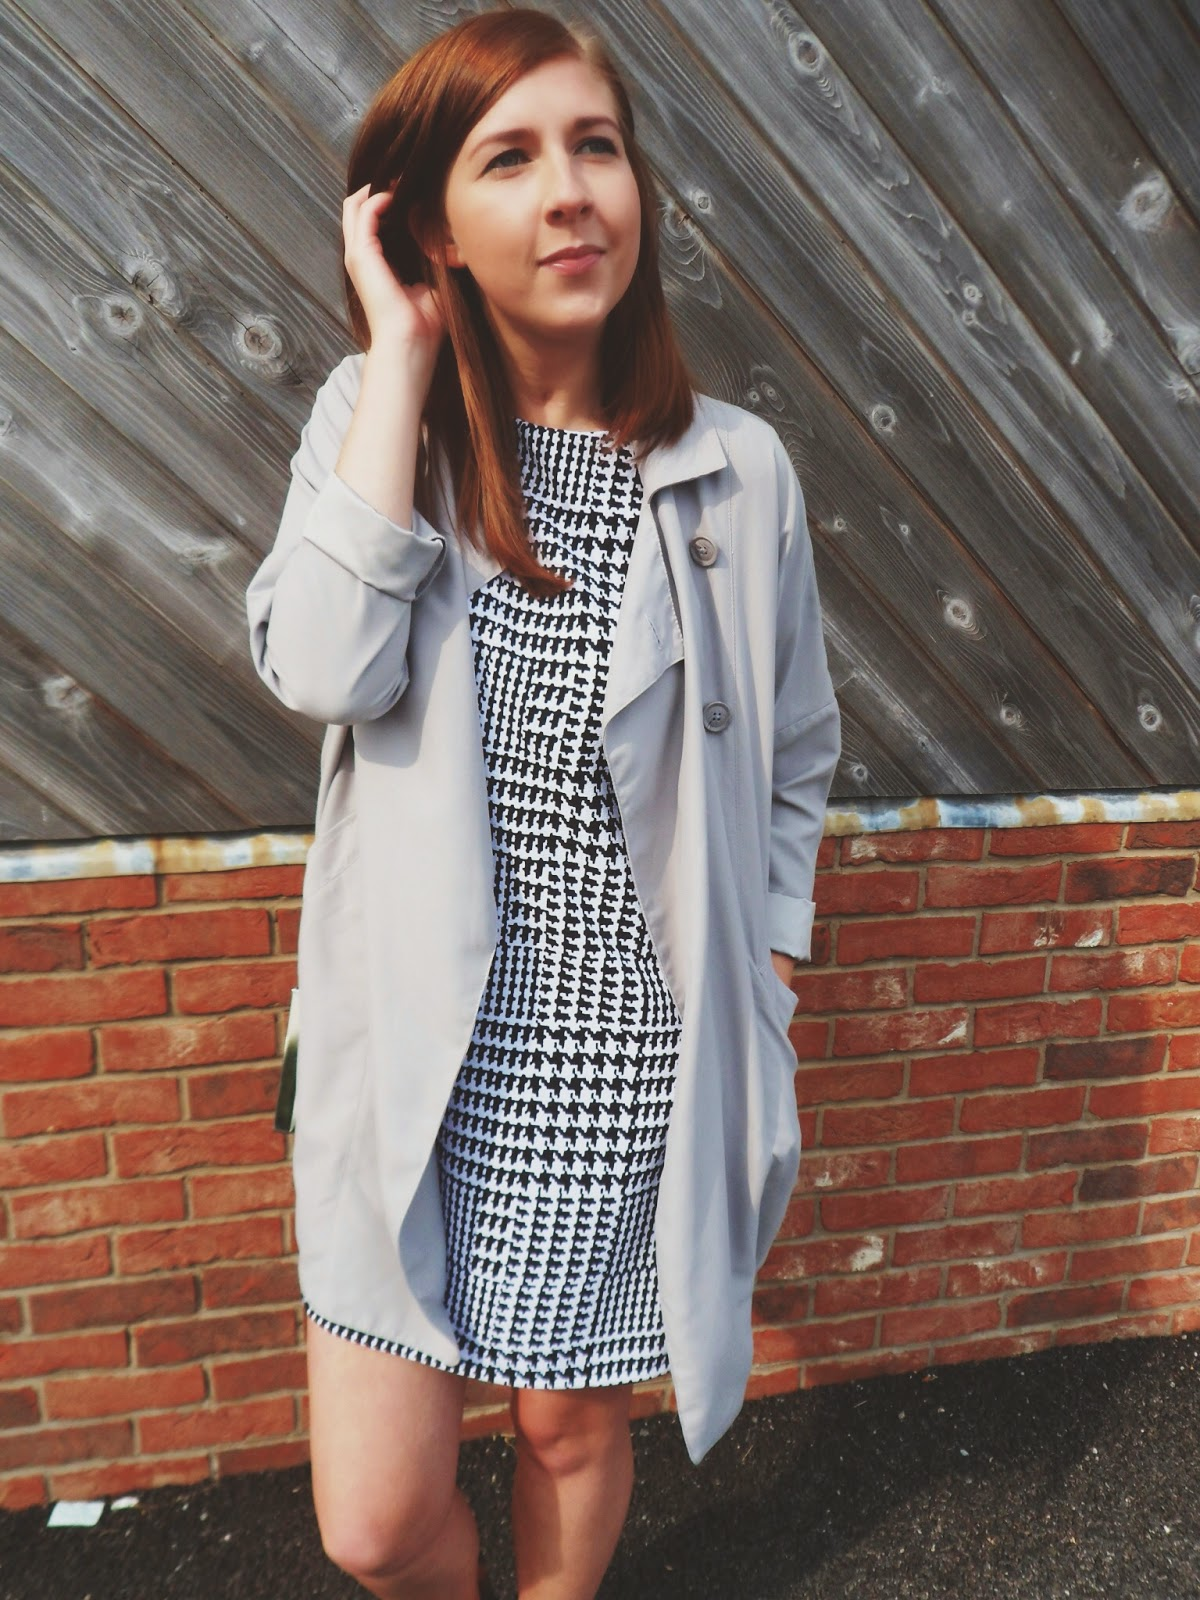 asseenonme, primark, whatimwearing, wiw, whatibought, lotd, lookoftheday, fbloggers, fashionbloggers, monochrome, dusterjacket, asos, riverisland, autumnwinter, autumnwinter2014, dress, ootd, outfitoftheday